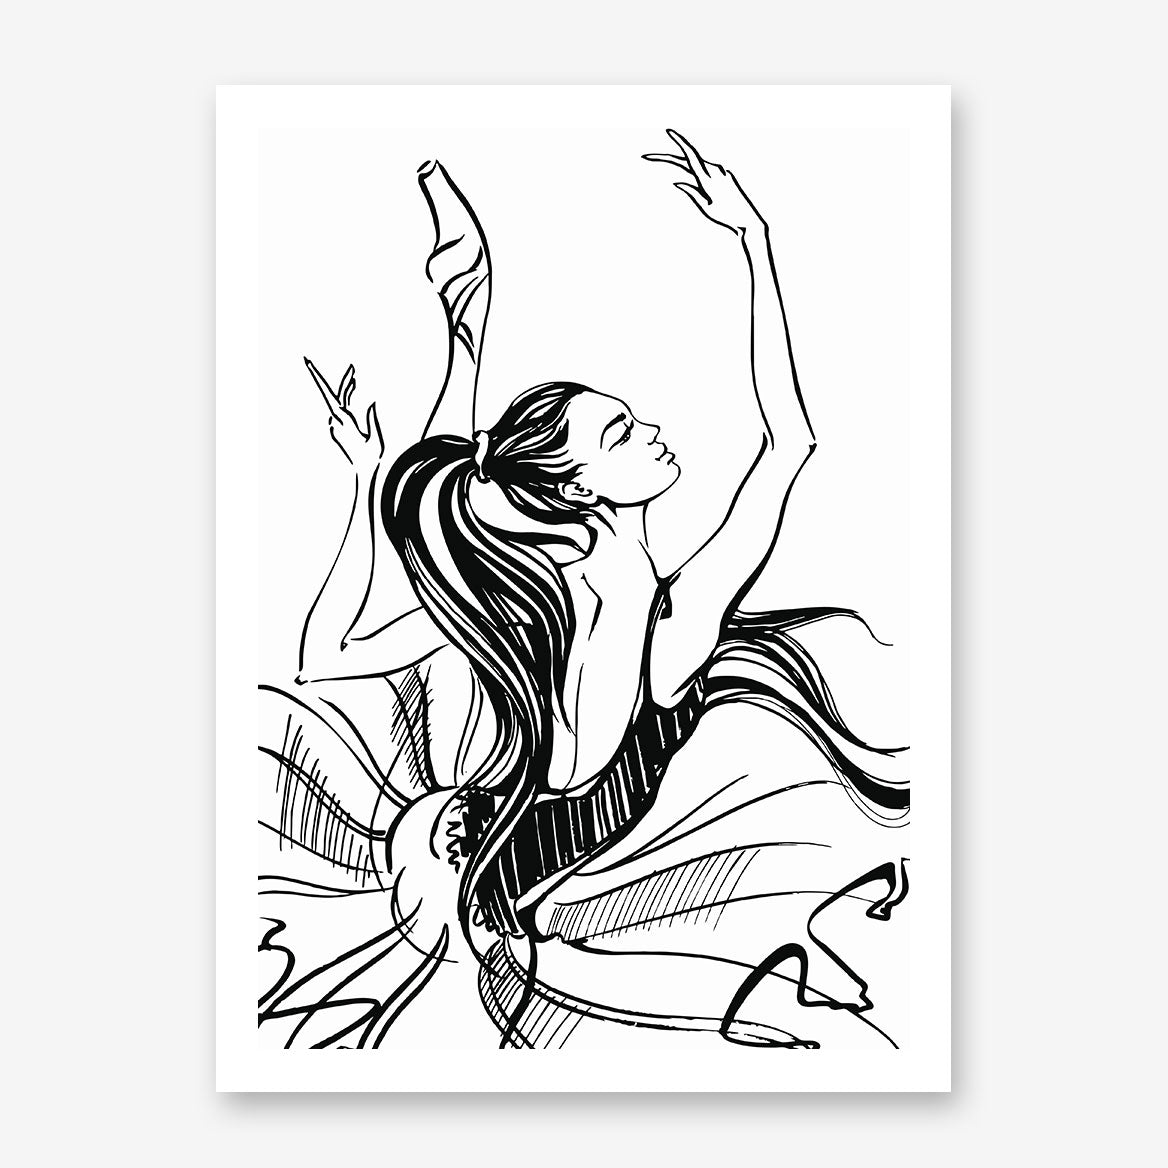 Glam drawing poster print with dancing ballerina sketch